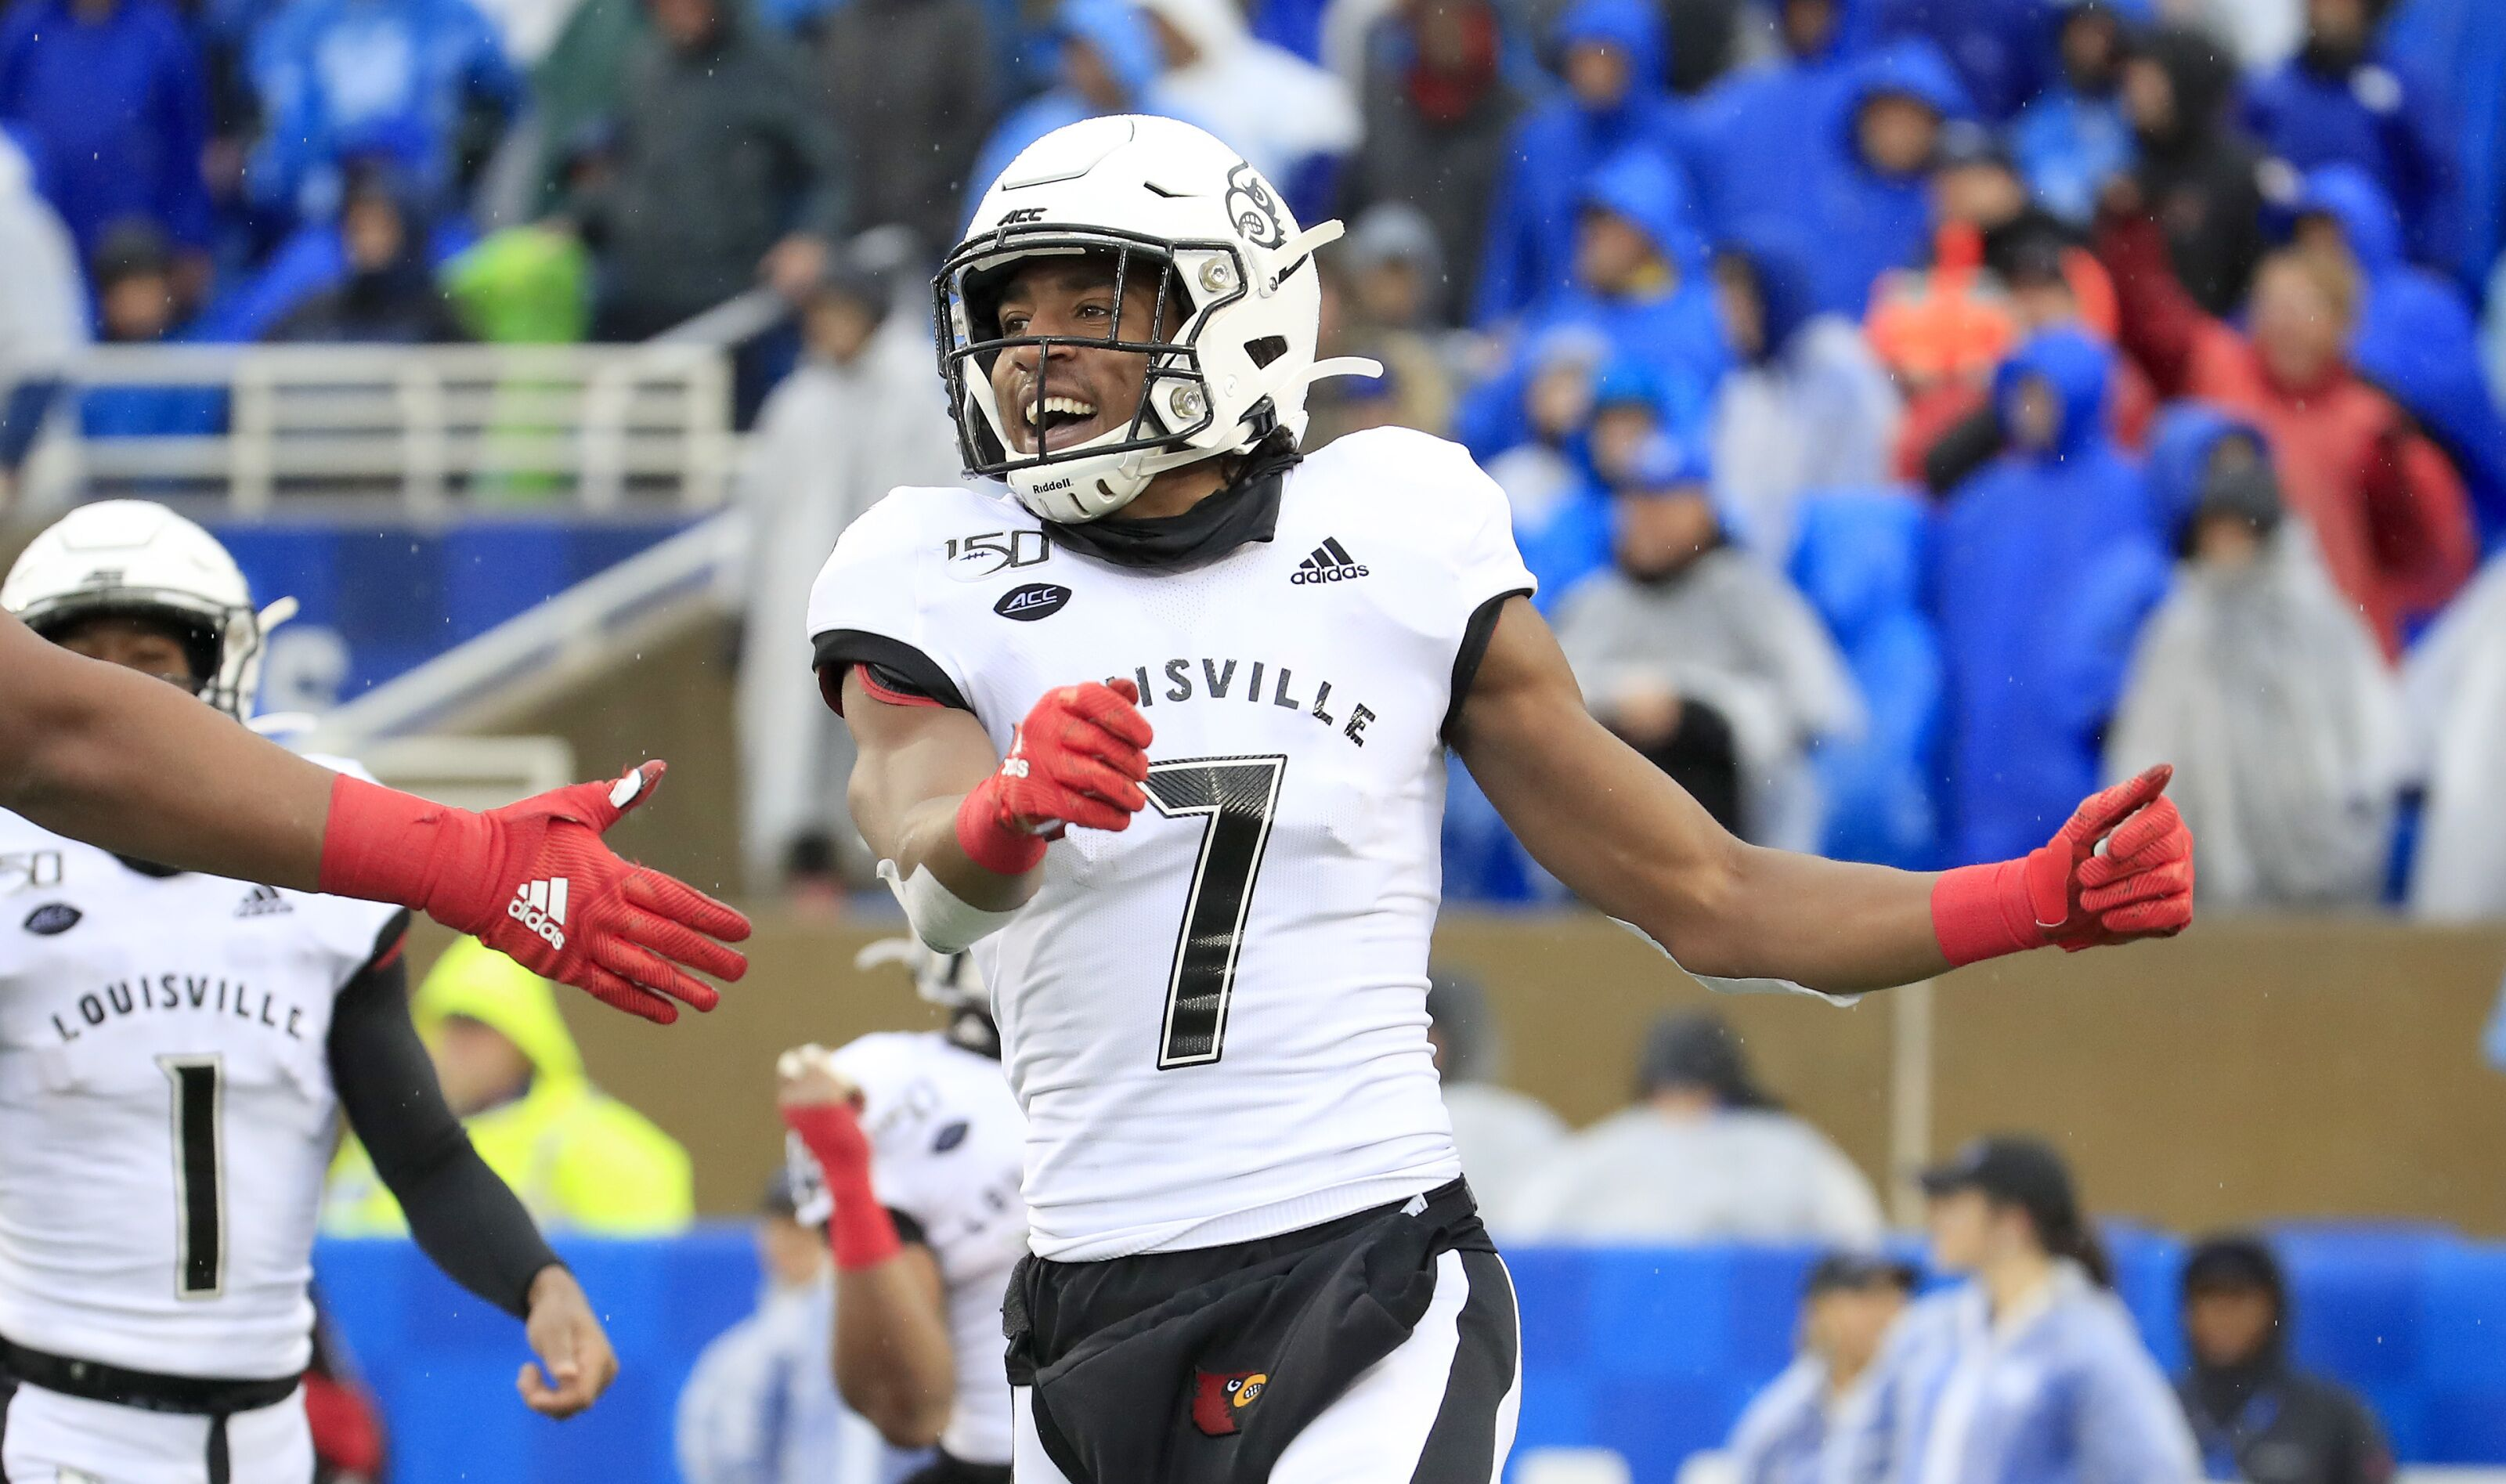 Louisville football: 5 important things to watch for in December